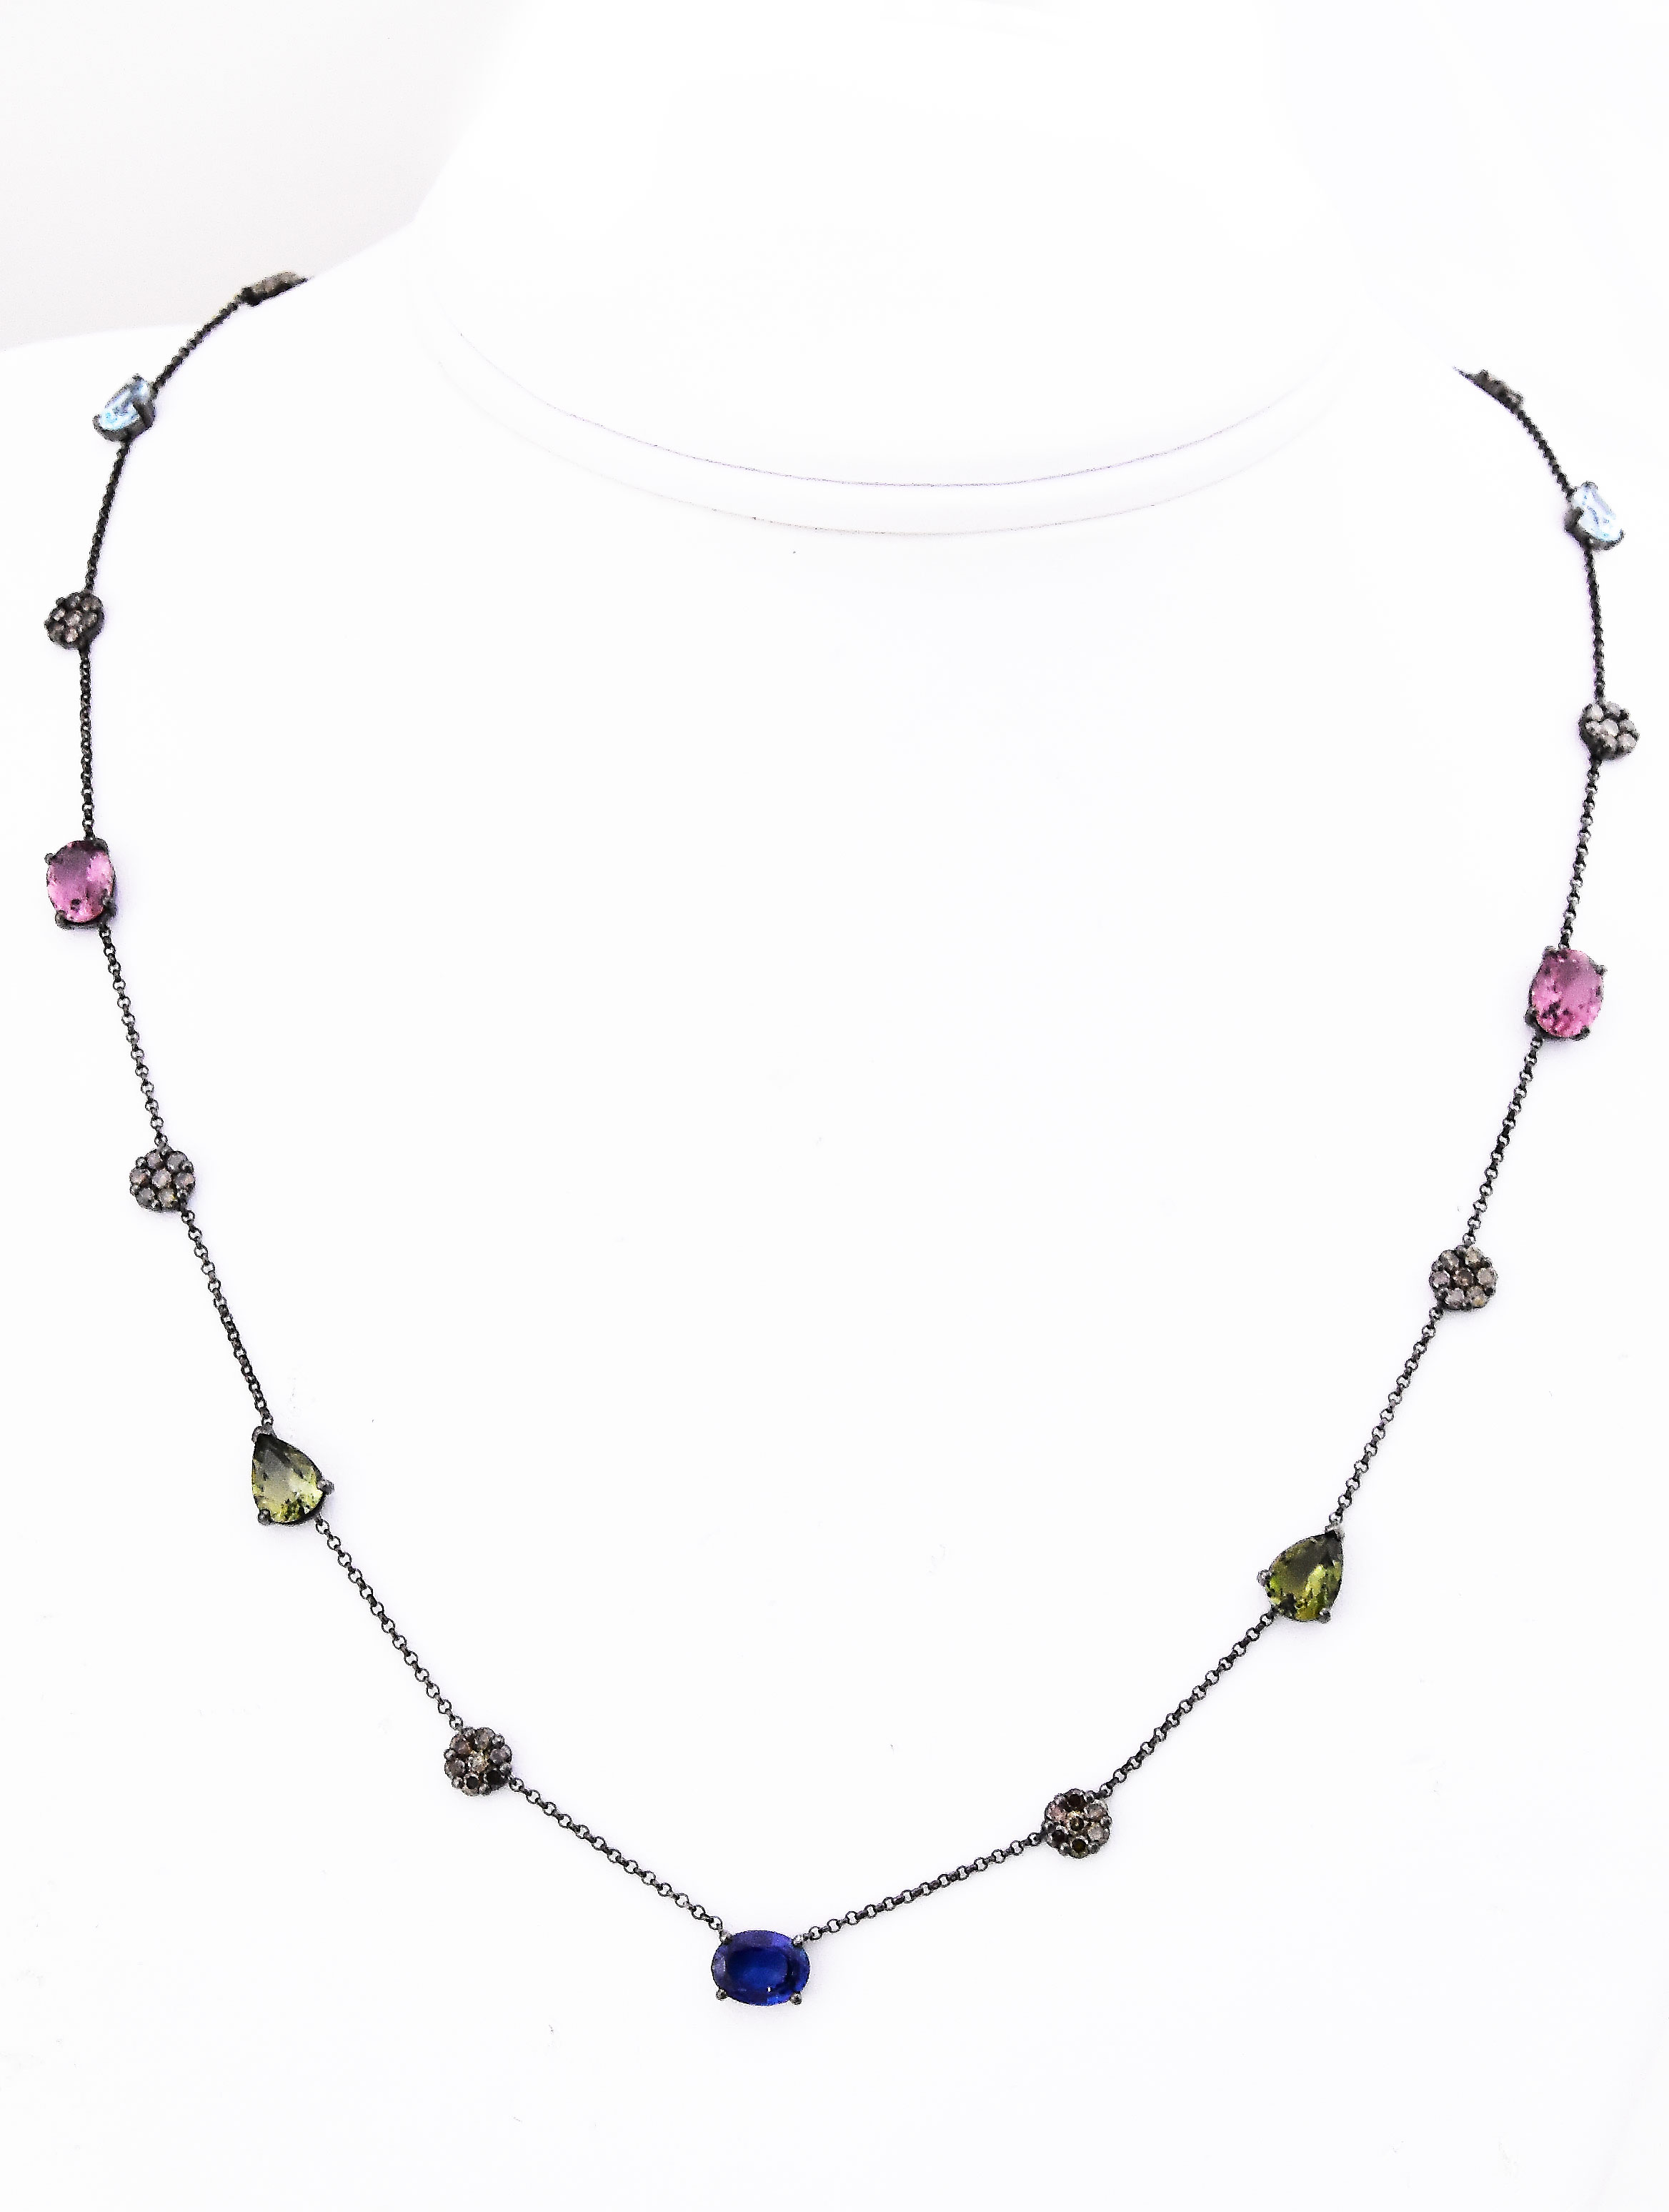 Over 9 Carats Total Weight Multi-Color Gemstone Necklace